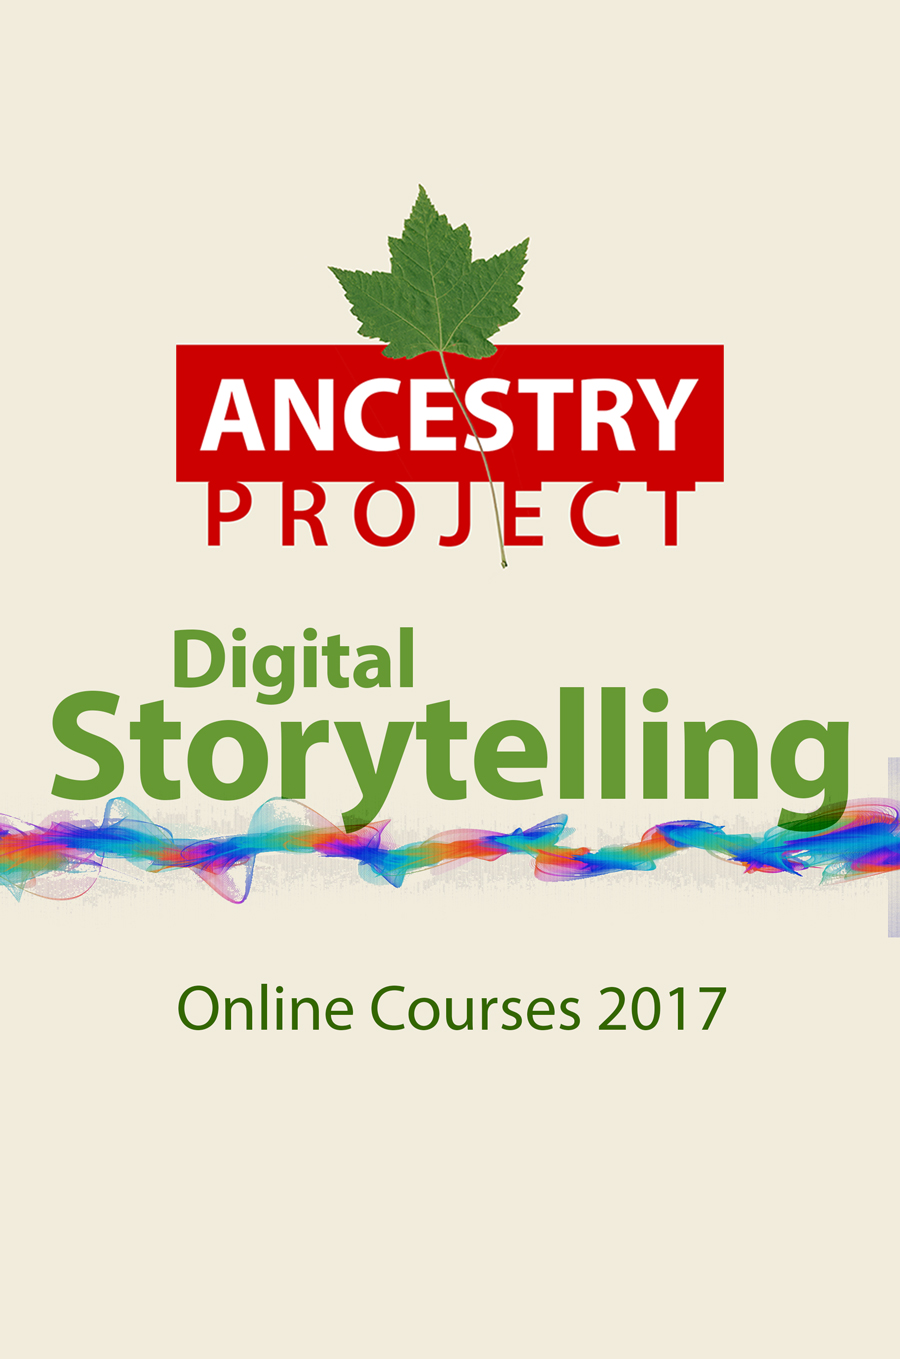 Digital Storytelling - Online Courses for 2017